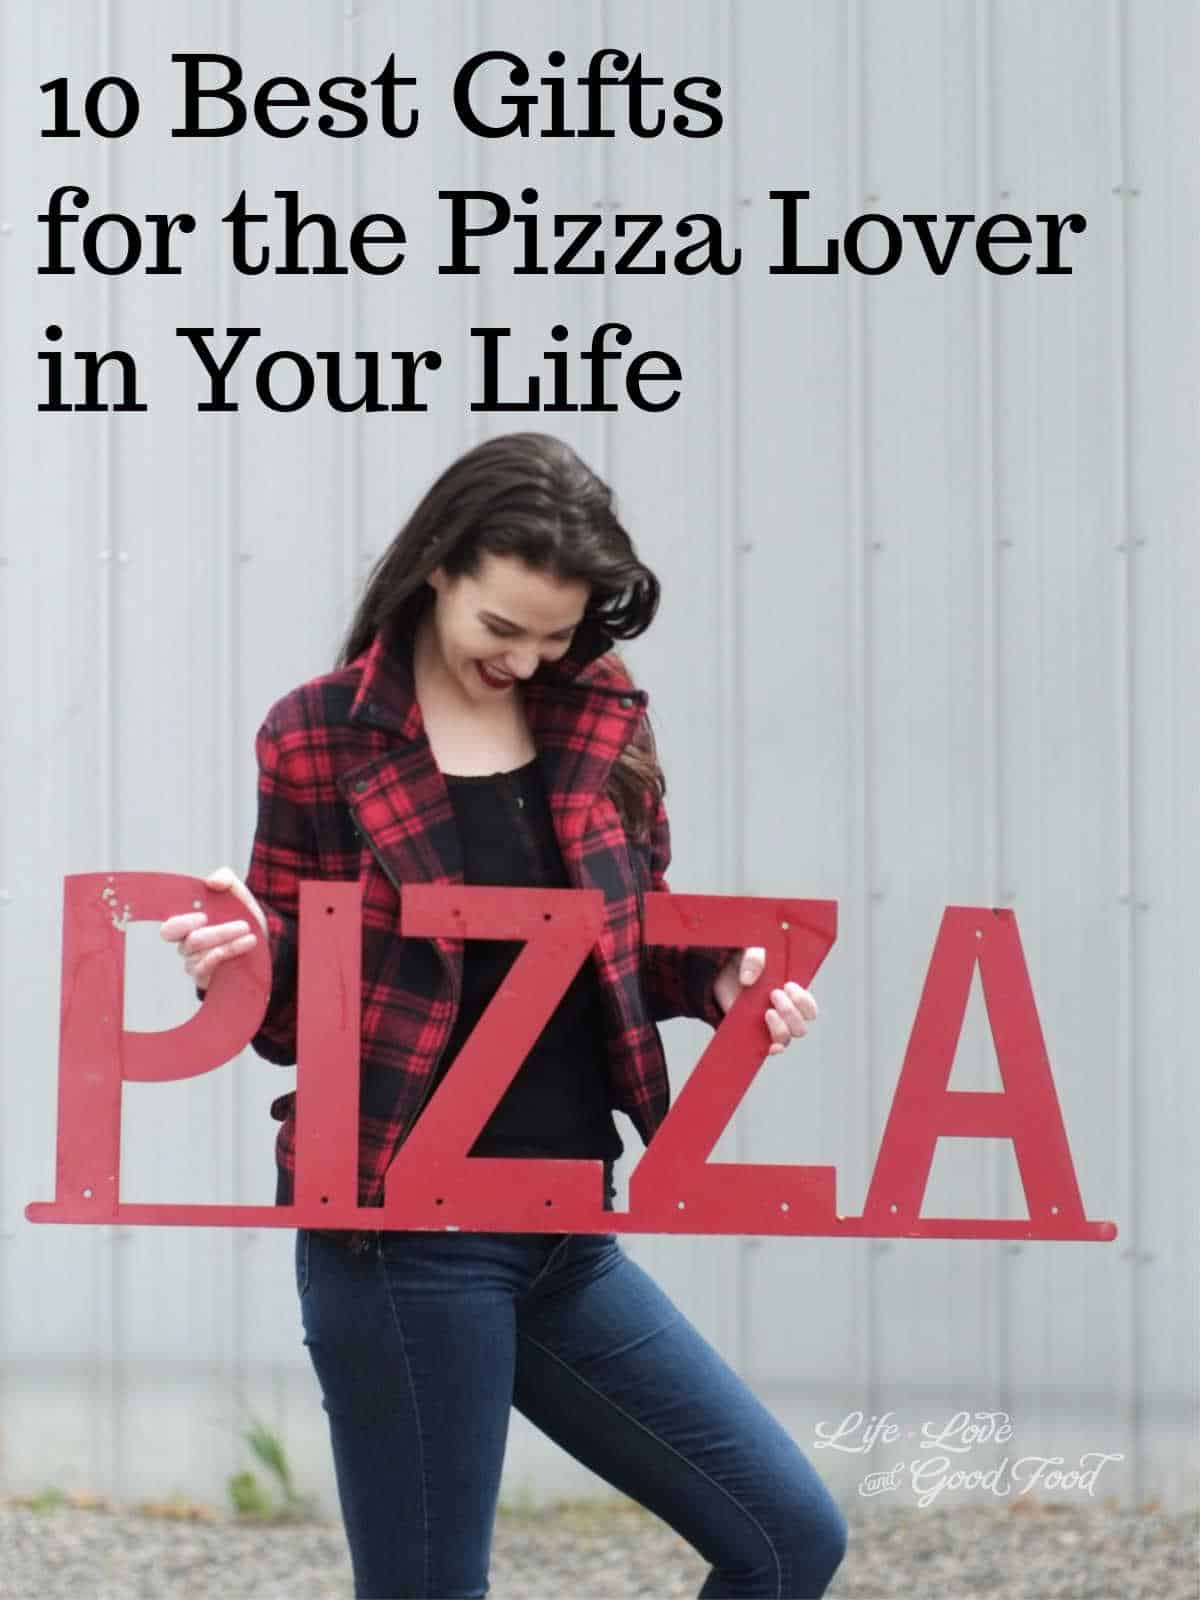 The 10 Best Gifts for Pizza Lovers is a gift guide for the pizza lover in your life who enjoys making gourmet pizza in their own kitchen. They make their own pizza dough, come up with creative pizza combinations, and love hosting pizza parties with their friends. #giftguide #pizzalover